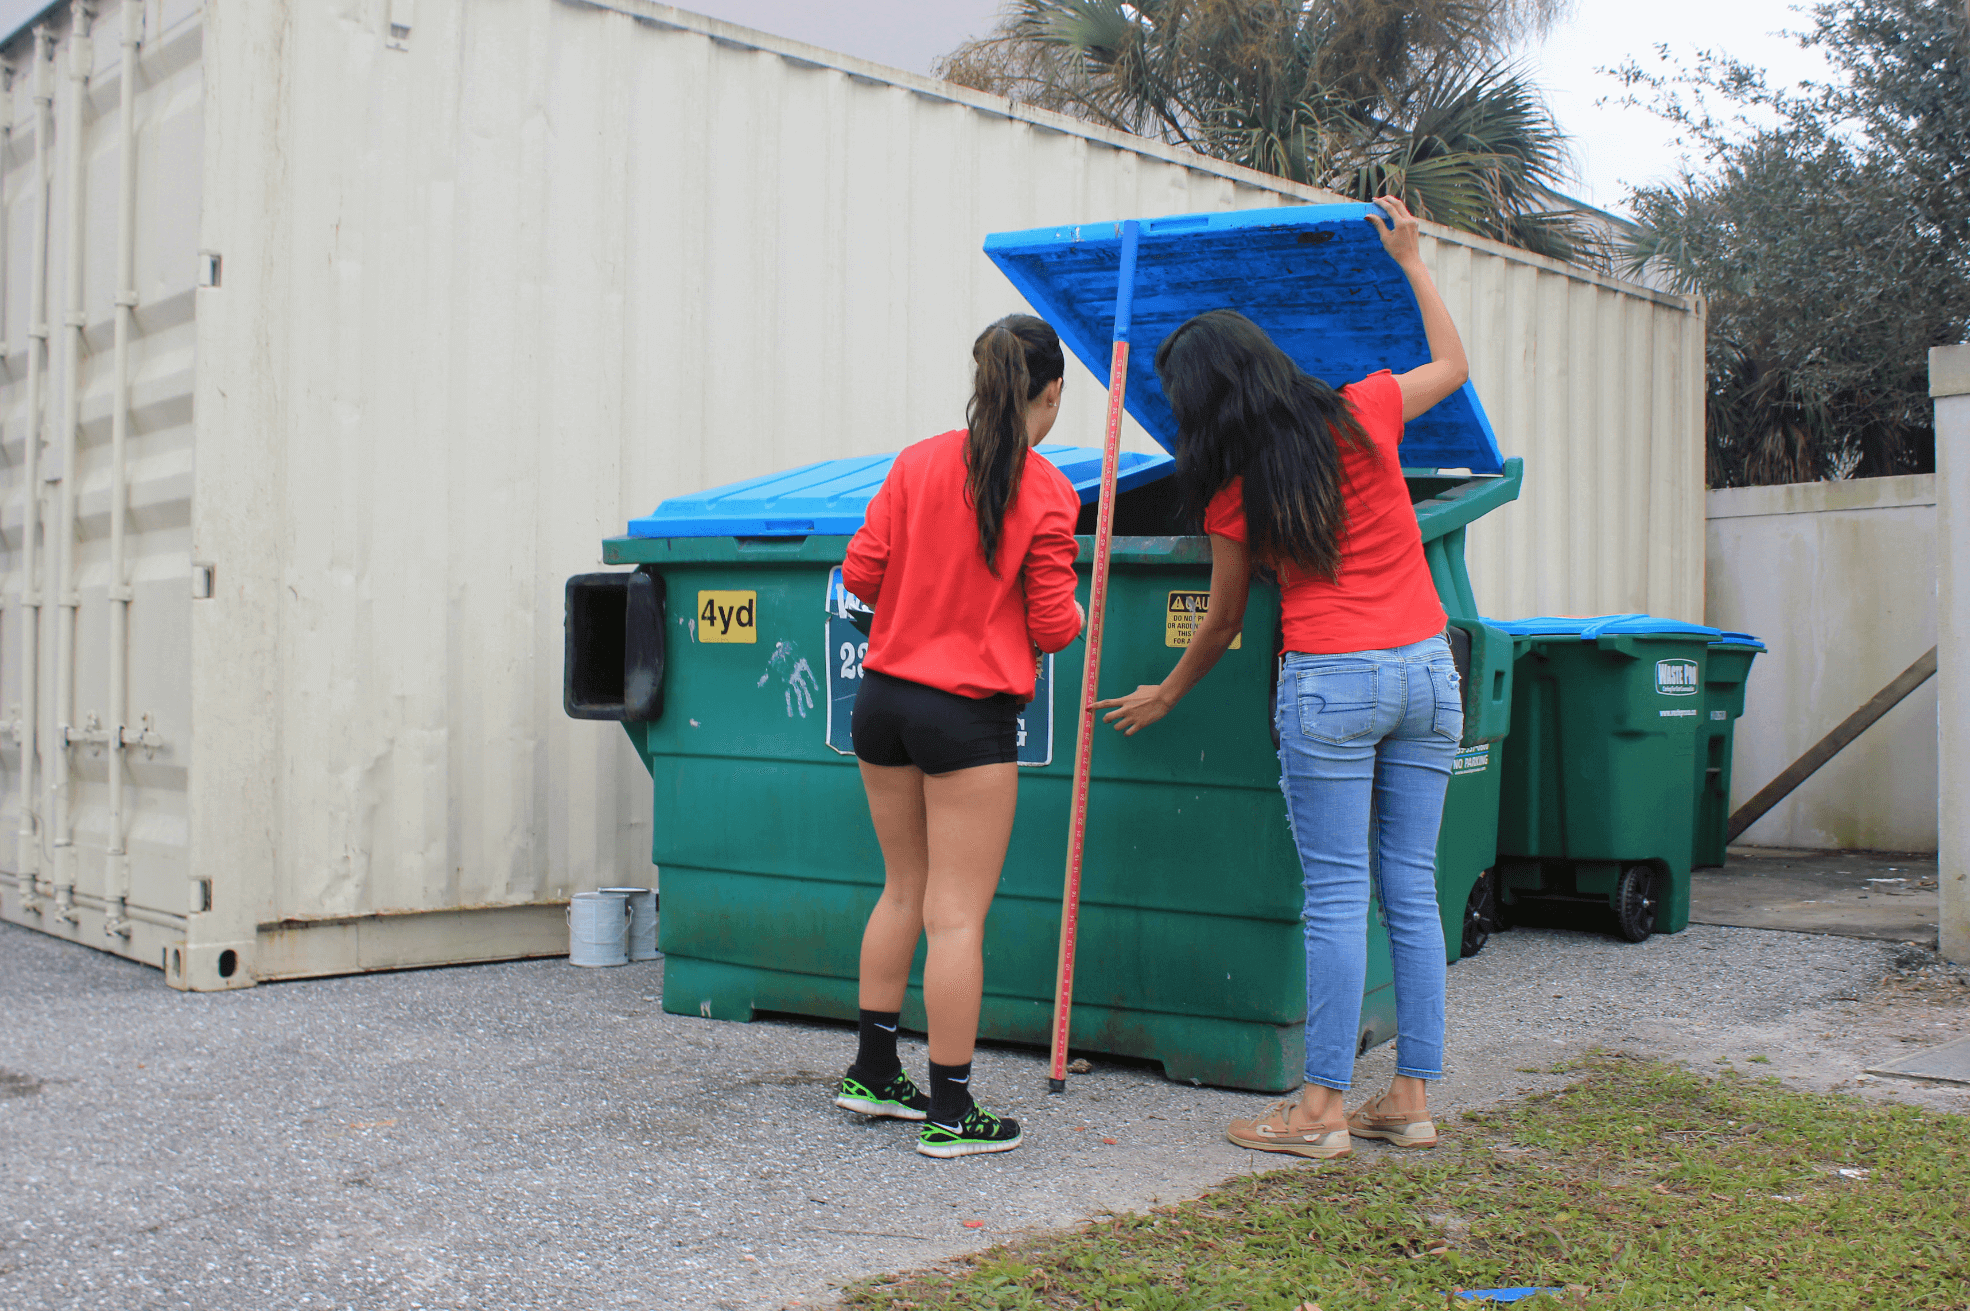 FGCU signs up for recycling competition among US and Canada schools